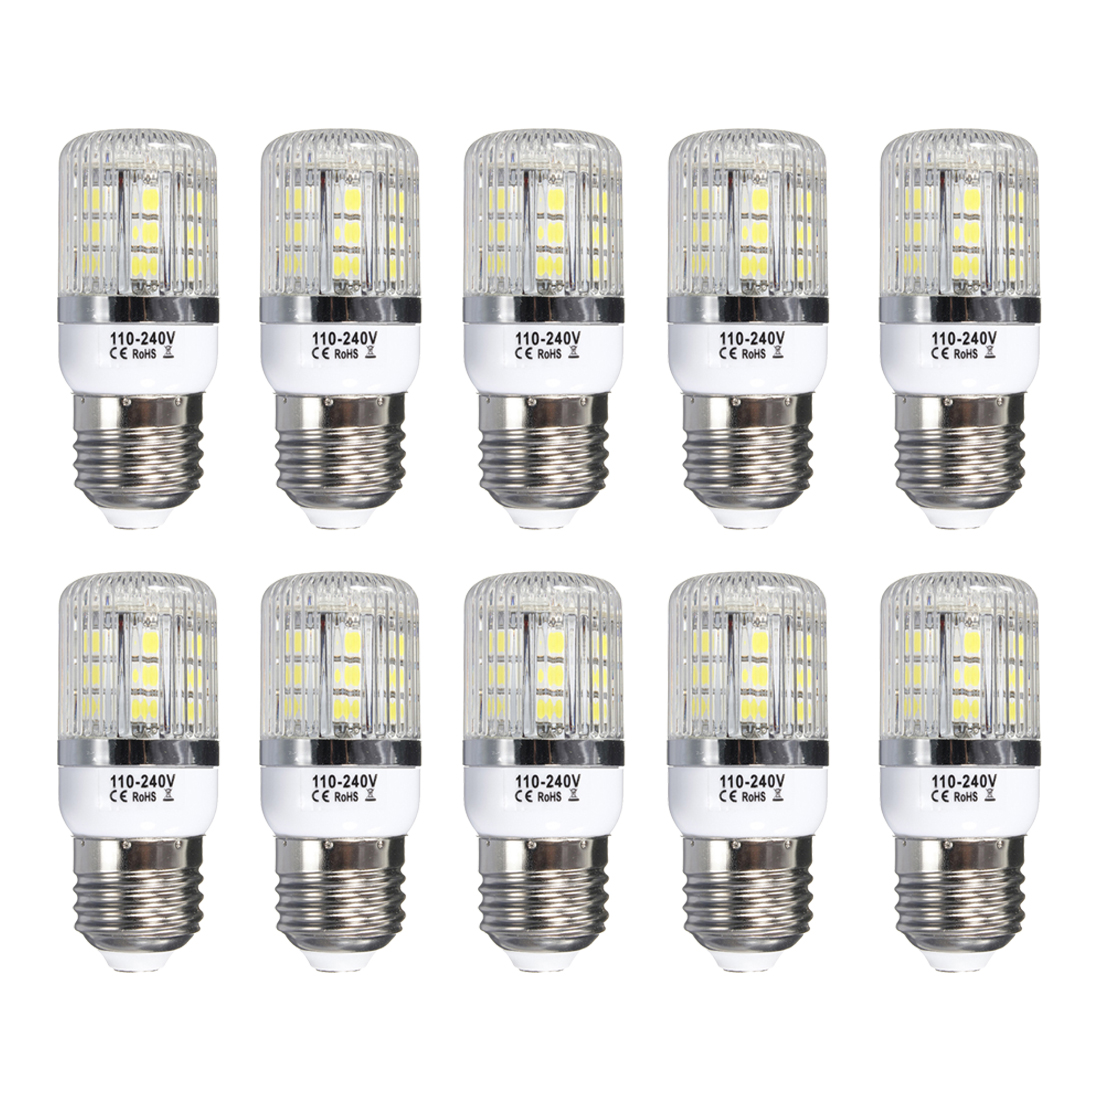 E27 5W Dimmable 27 SMD 5050 LED Corn Light Bulb Lamp Base Type:E27-5W Pure White(6000-6500K) Amount:10 Pcs smk1260 to 220f